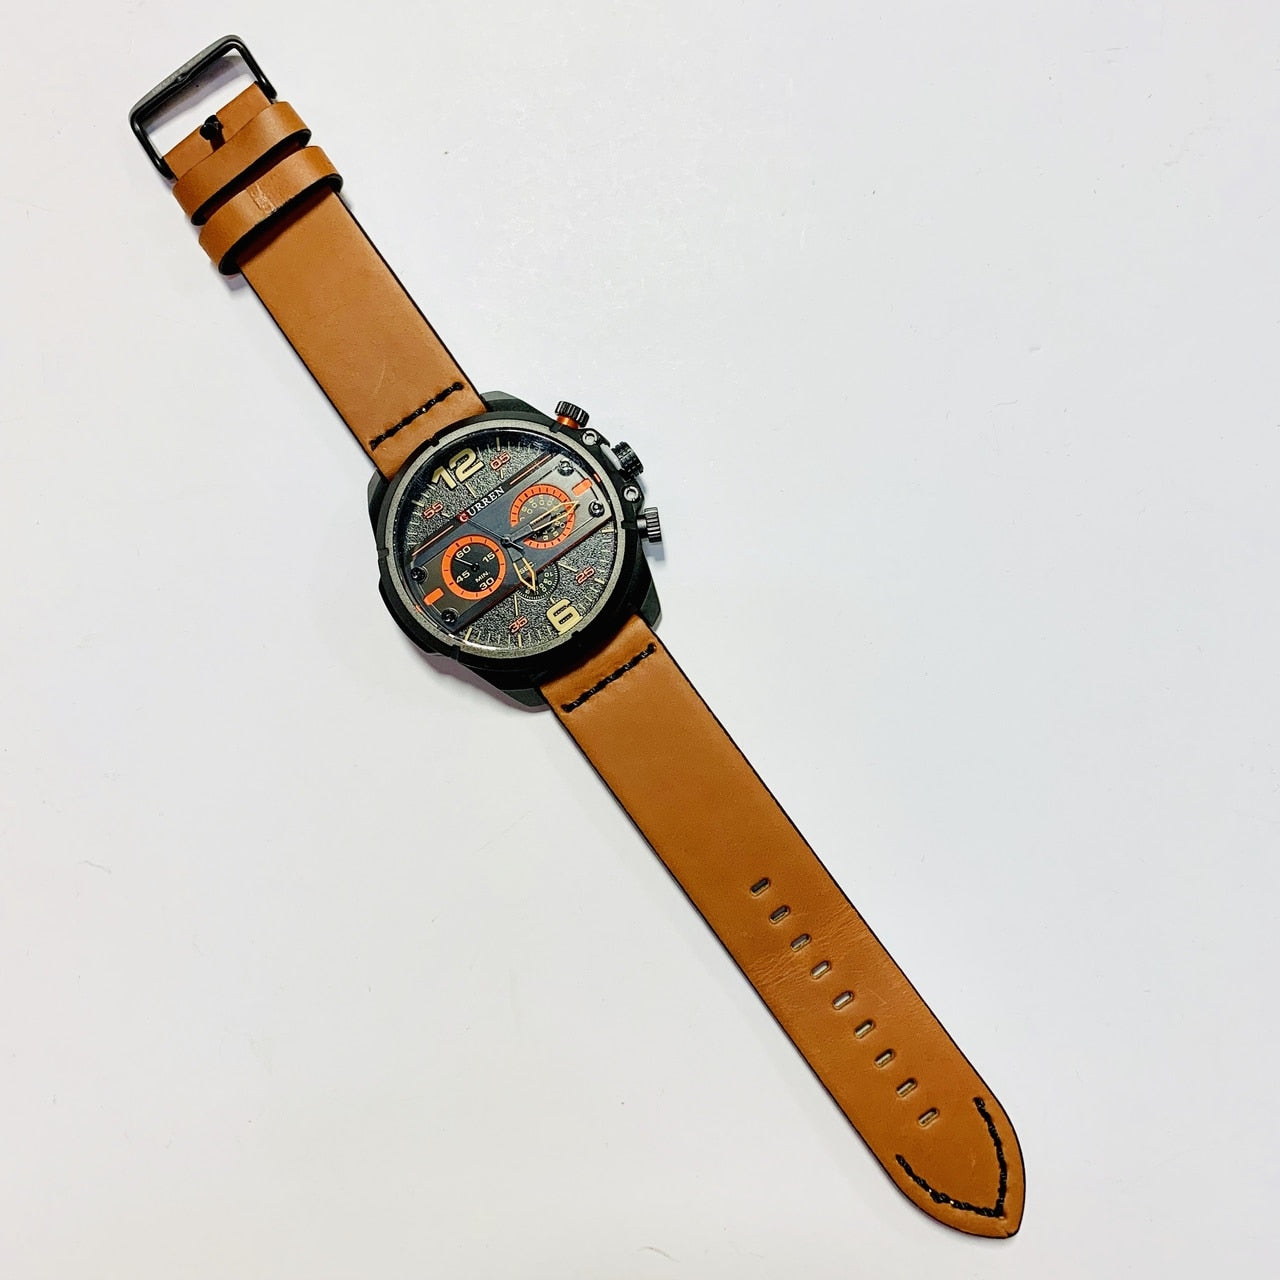 Large Face Leisure Style Watch